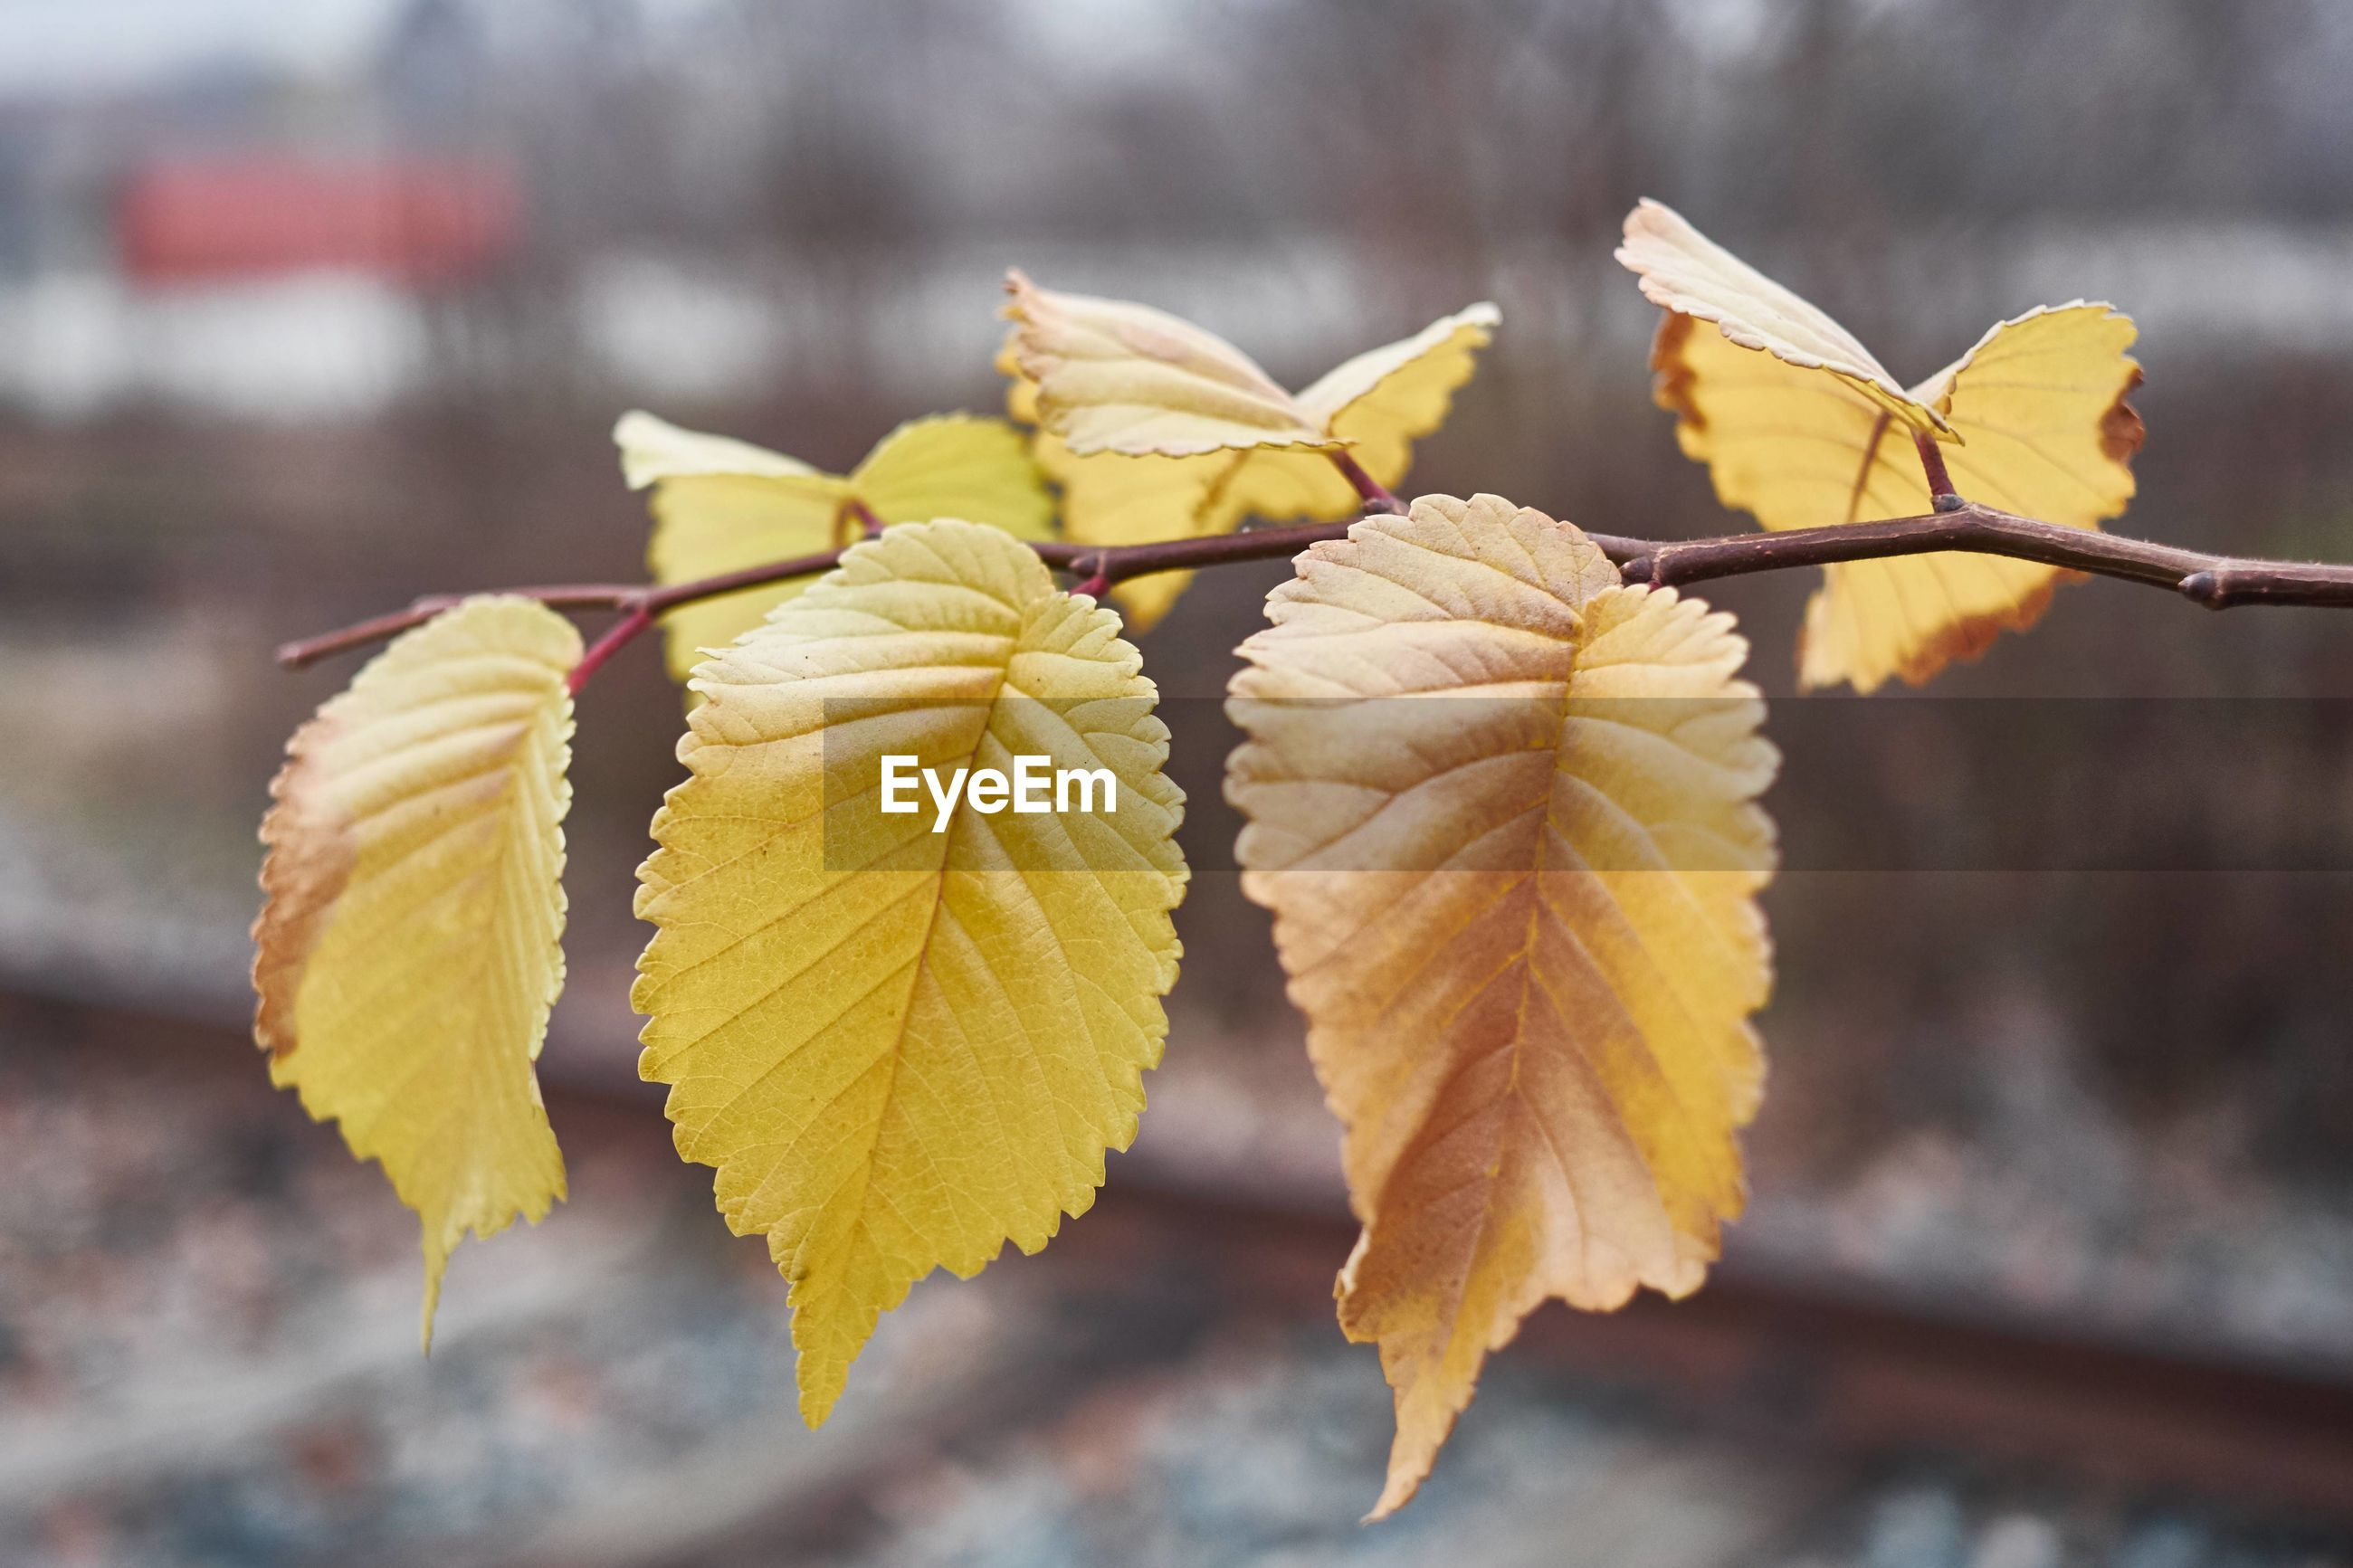 nature, close-up, focus on foreground, beauty in nature, growth, plant, yellow, outdoors, leaf, day, no people, tree